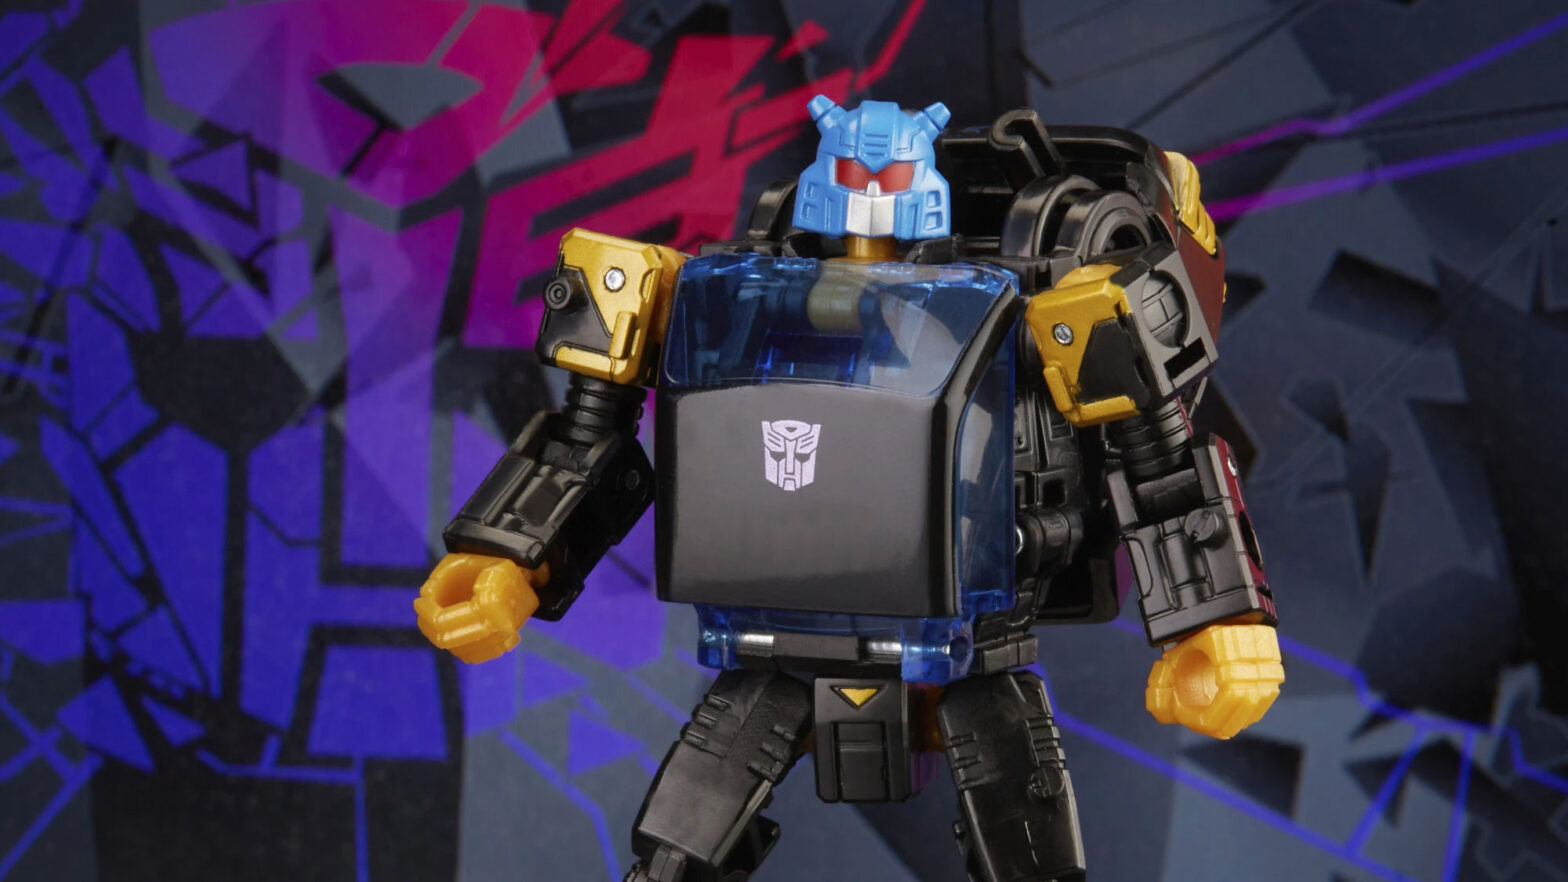 Transformers Generations Shattered Glass Collection Autobot Goldbug & IDW Shattered Glass Goldbug